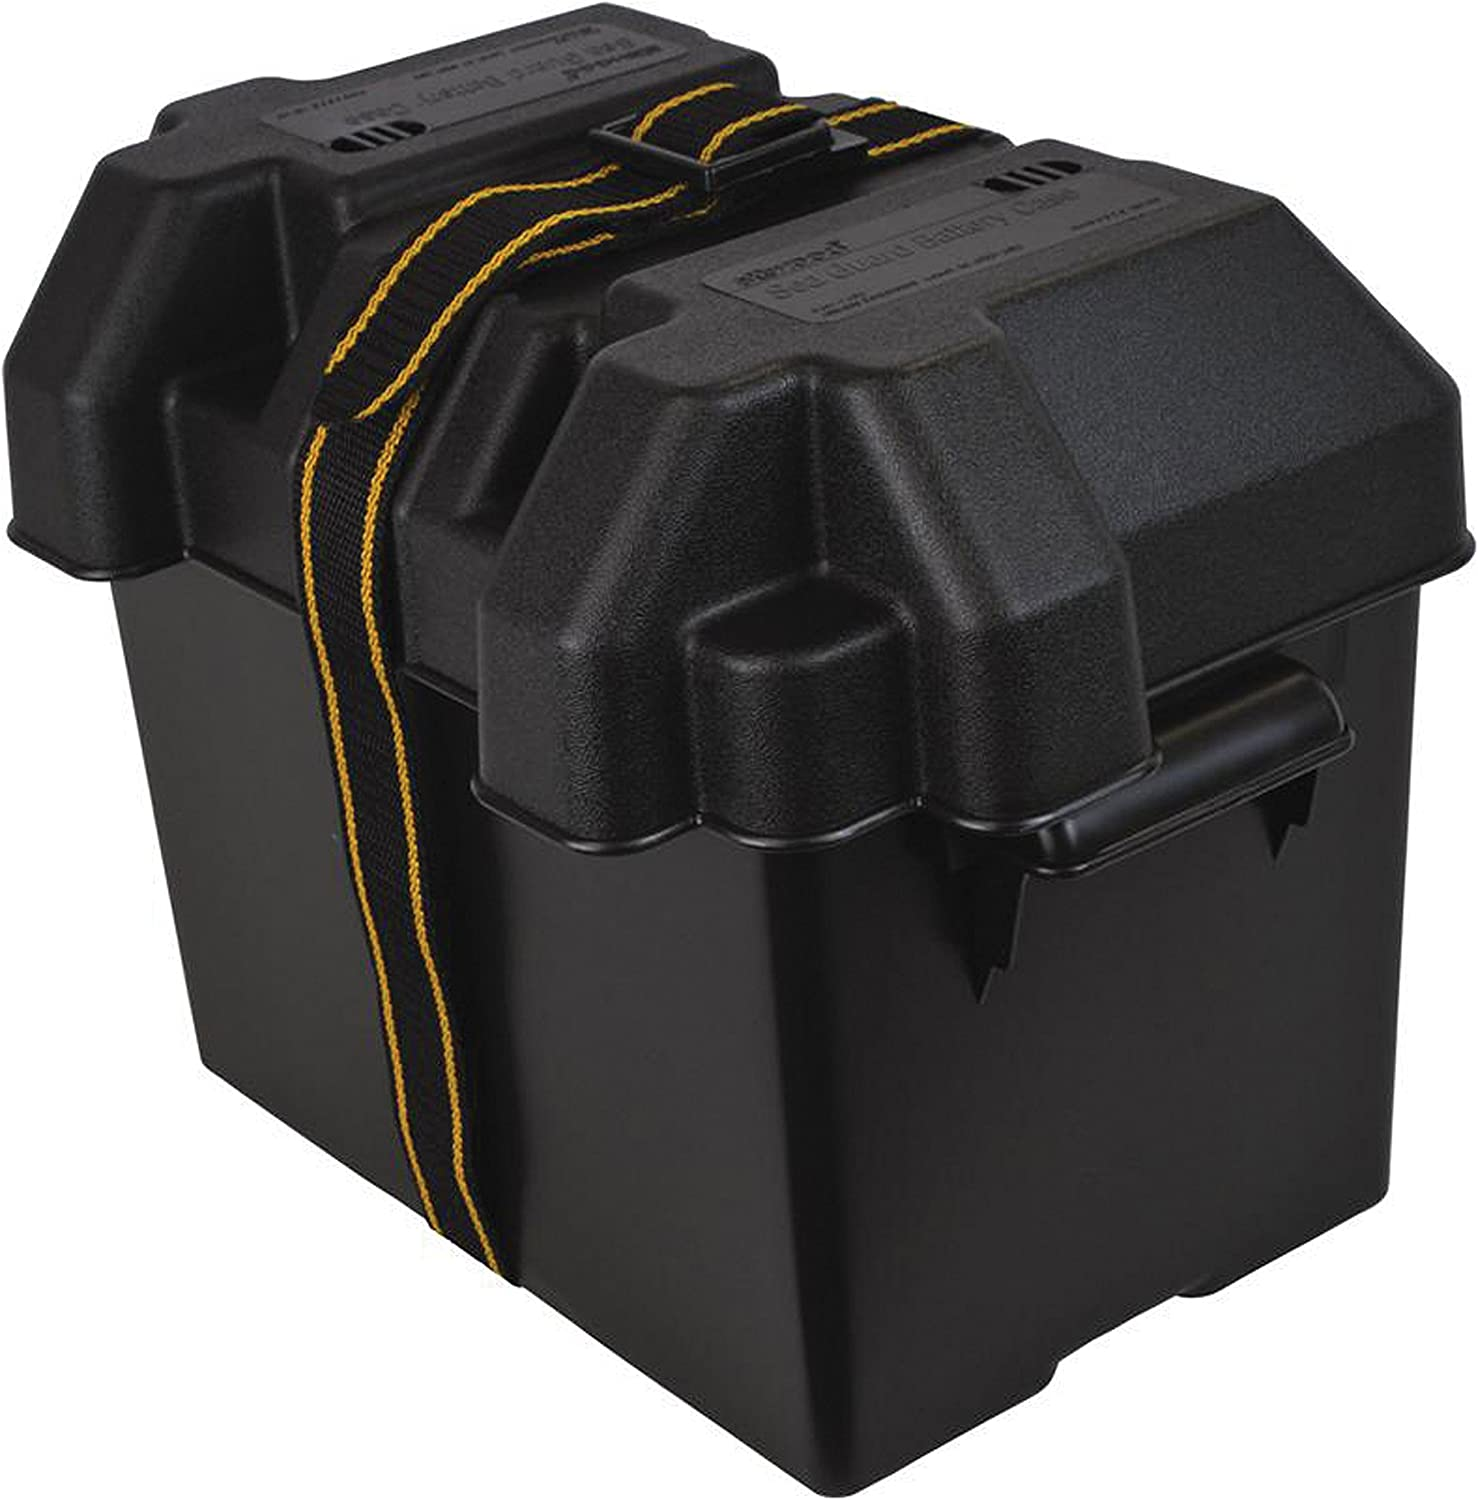 Black Attwood 9084-1 Large Battery Box Vented 29//31 Series